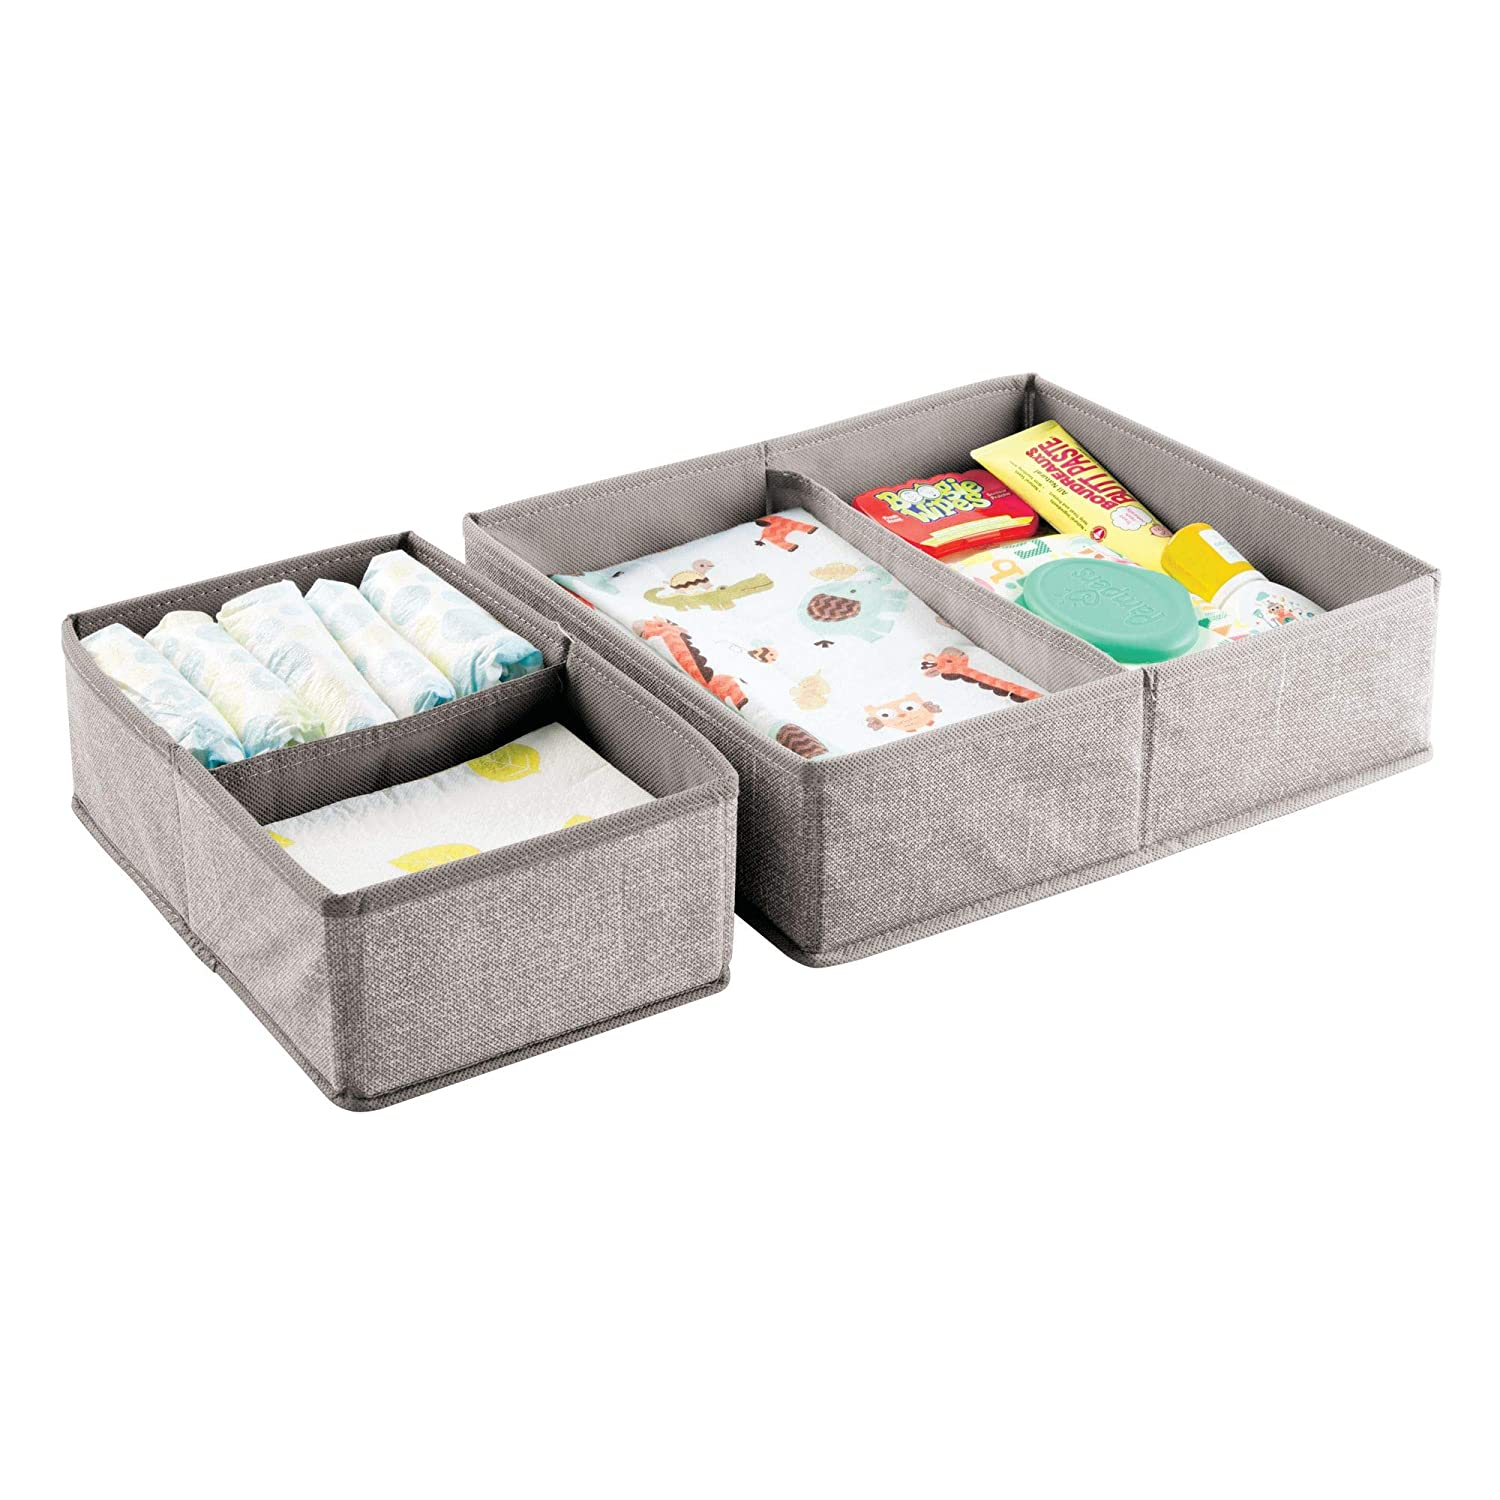 mDesign Fabric Baby Nursery Storage Organizers for Clothing, Towels, Diapers, Lotion, Wipes - Set of 4, 4 Total Compartments, Linen MetroDecor 7911MDB